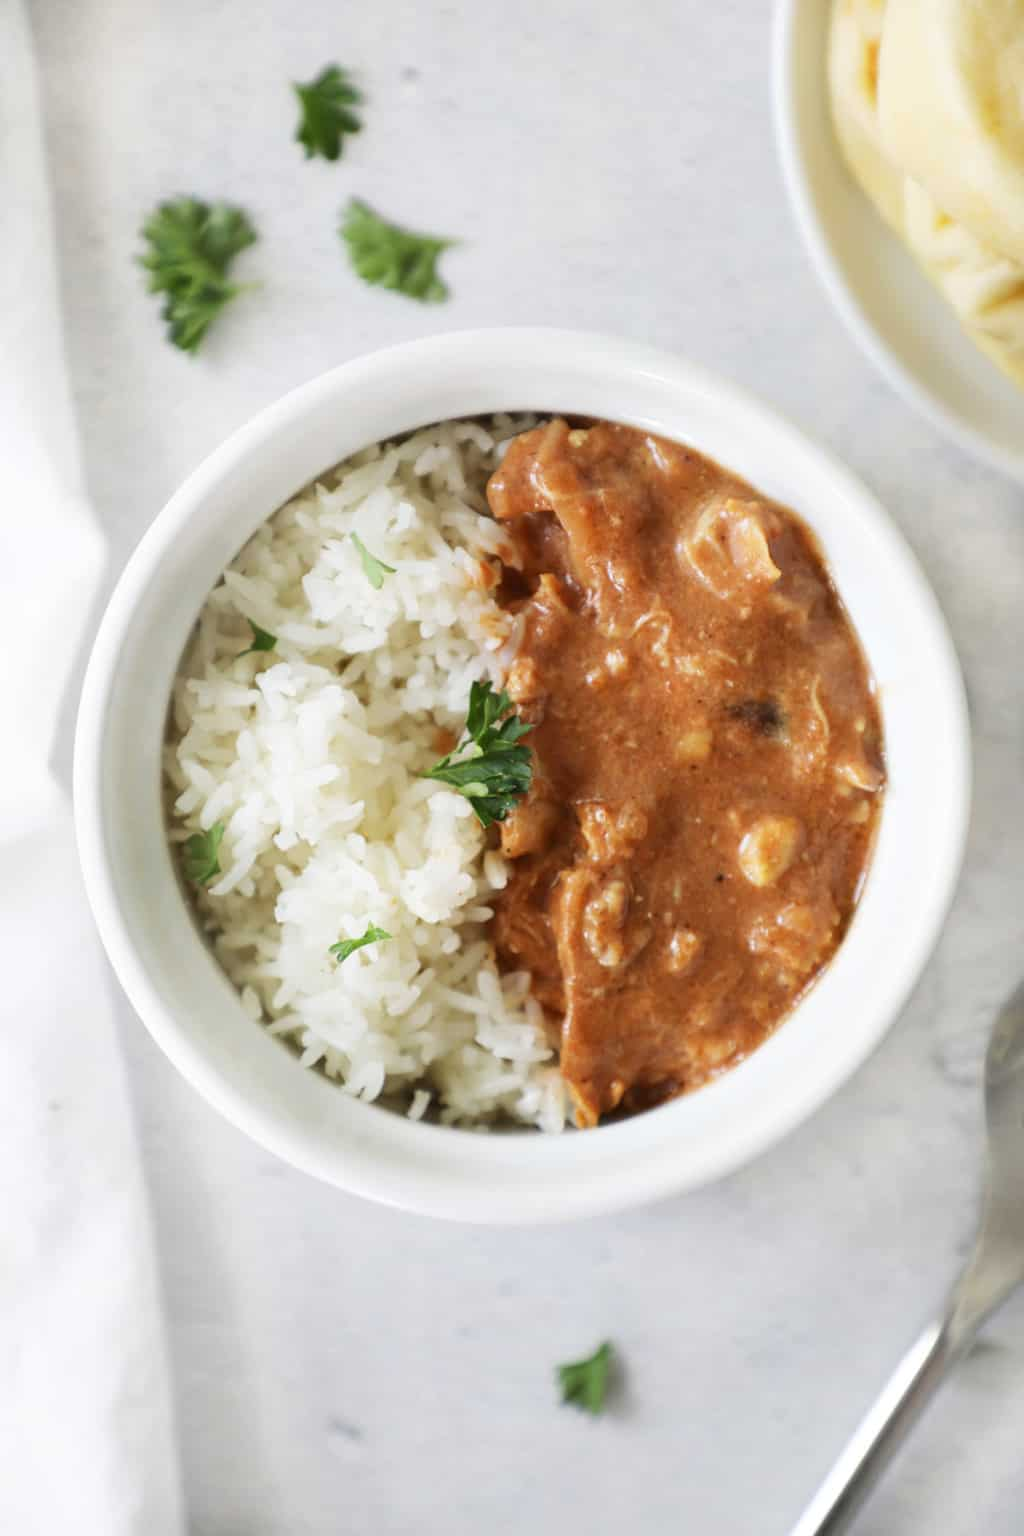 rice and tikka masala in a bowl on a cement counter